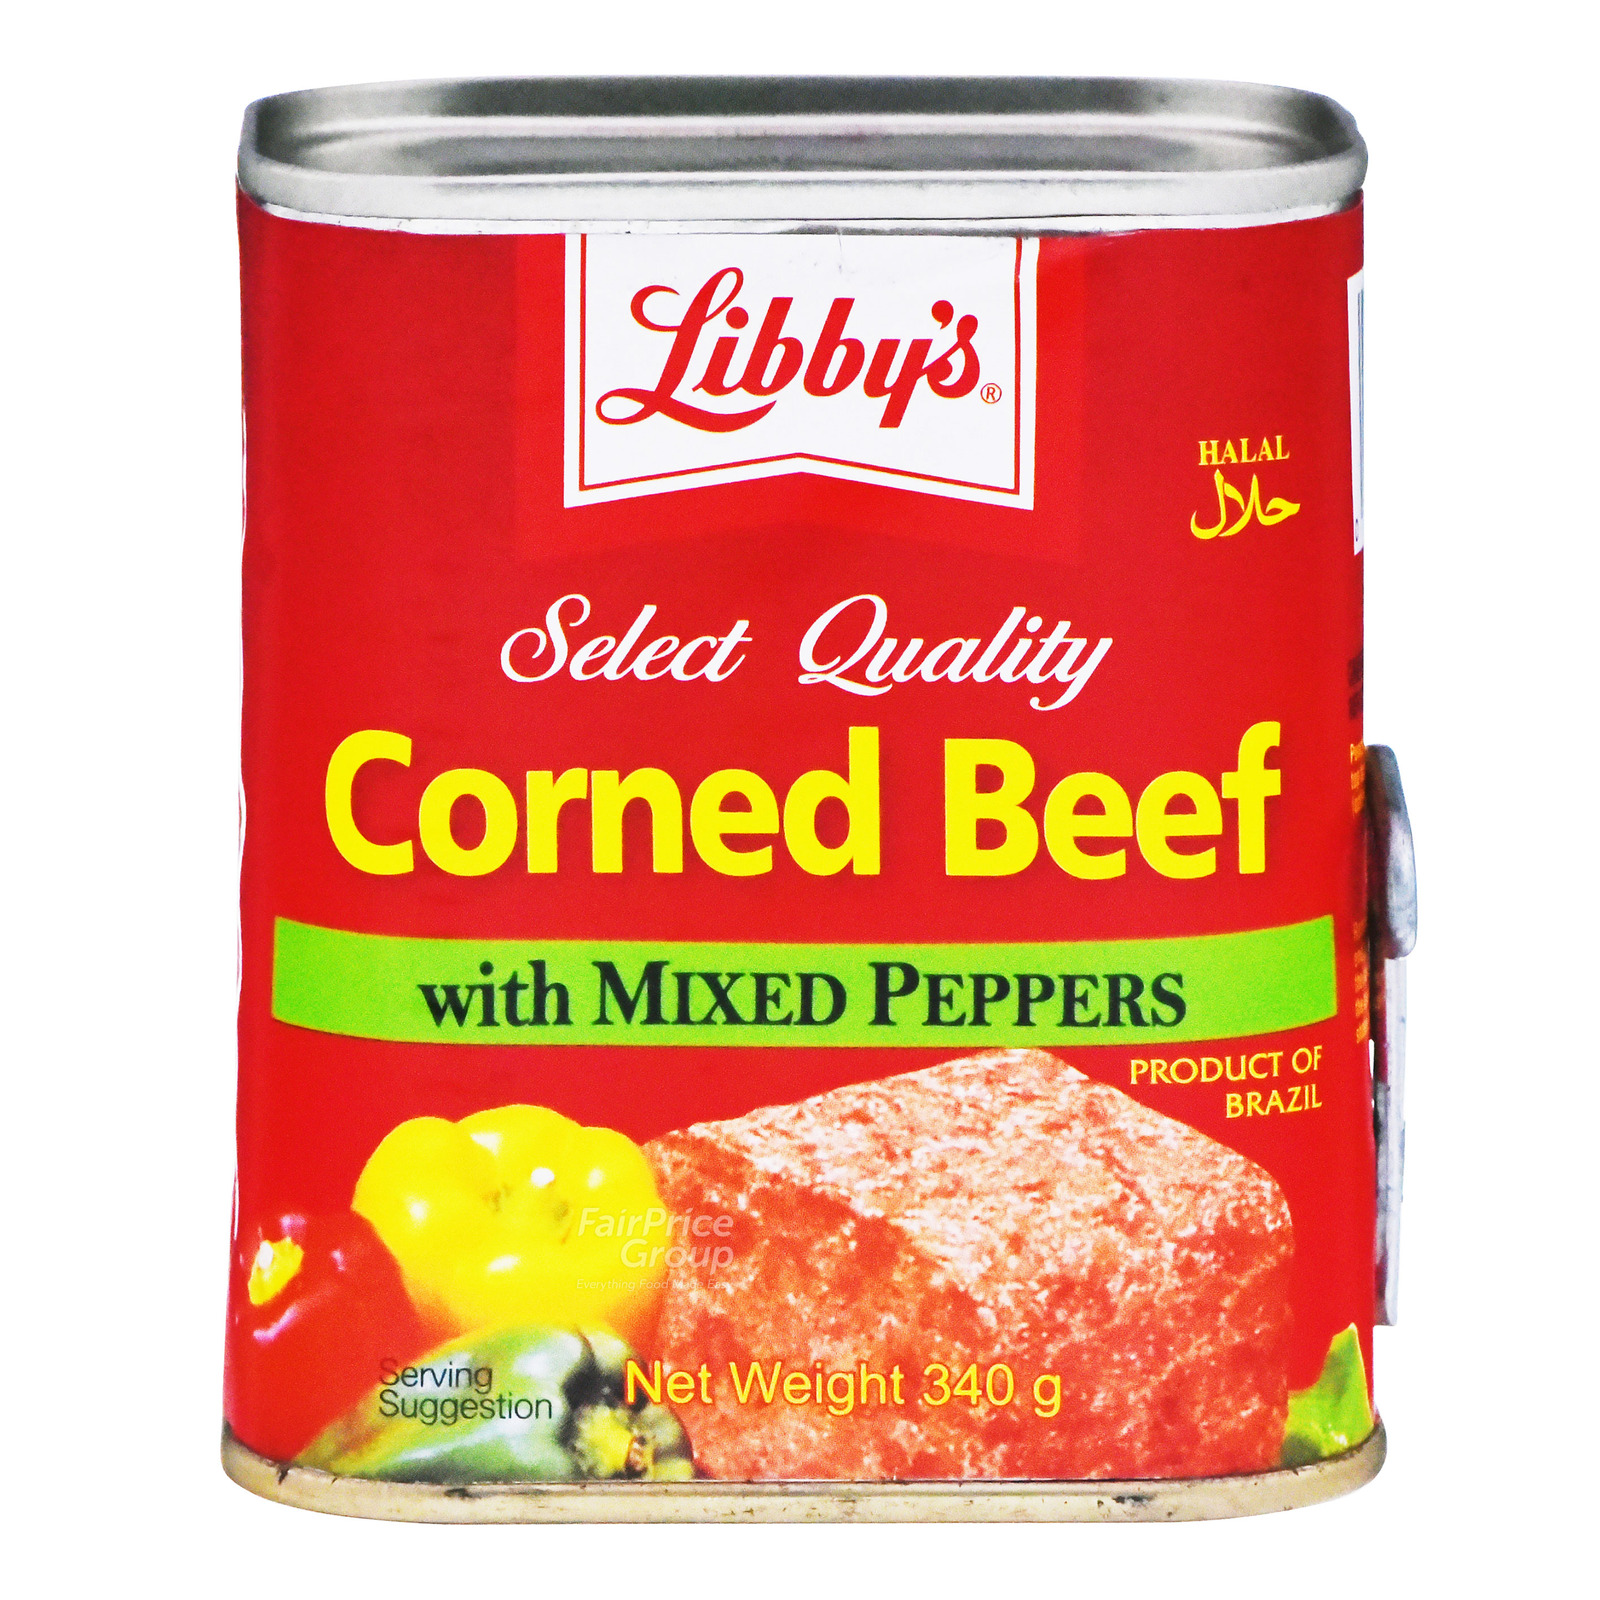 Libby's Corned Beef - Mixed Peppers